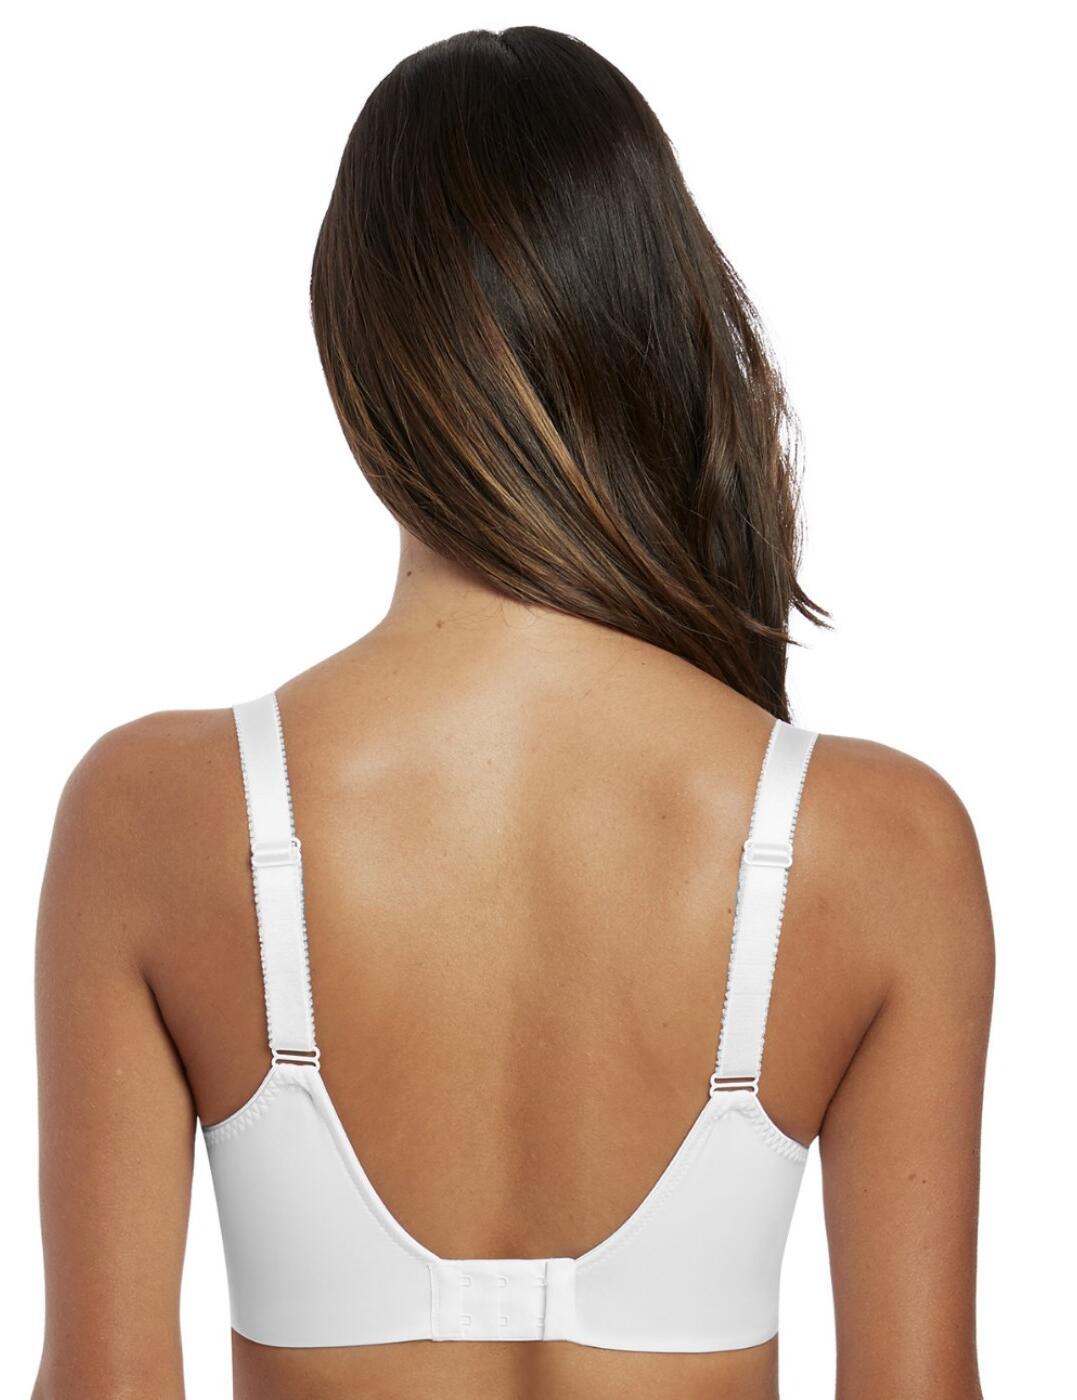 Fantasie-Illusion-Bra-Underwired-Side-Support-2982-Non-Padded-Supportive-Bra thumbnail 3